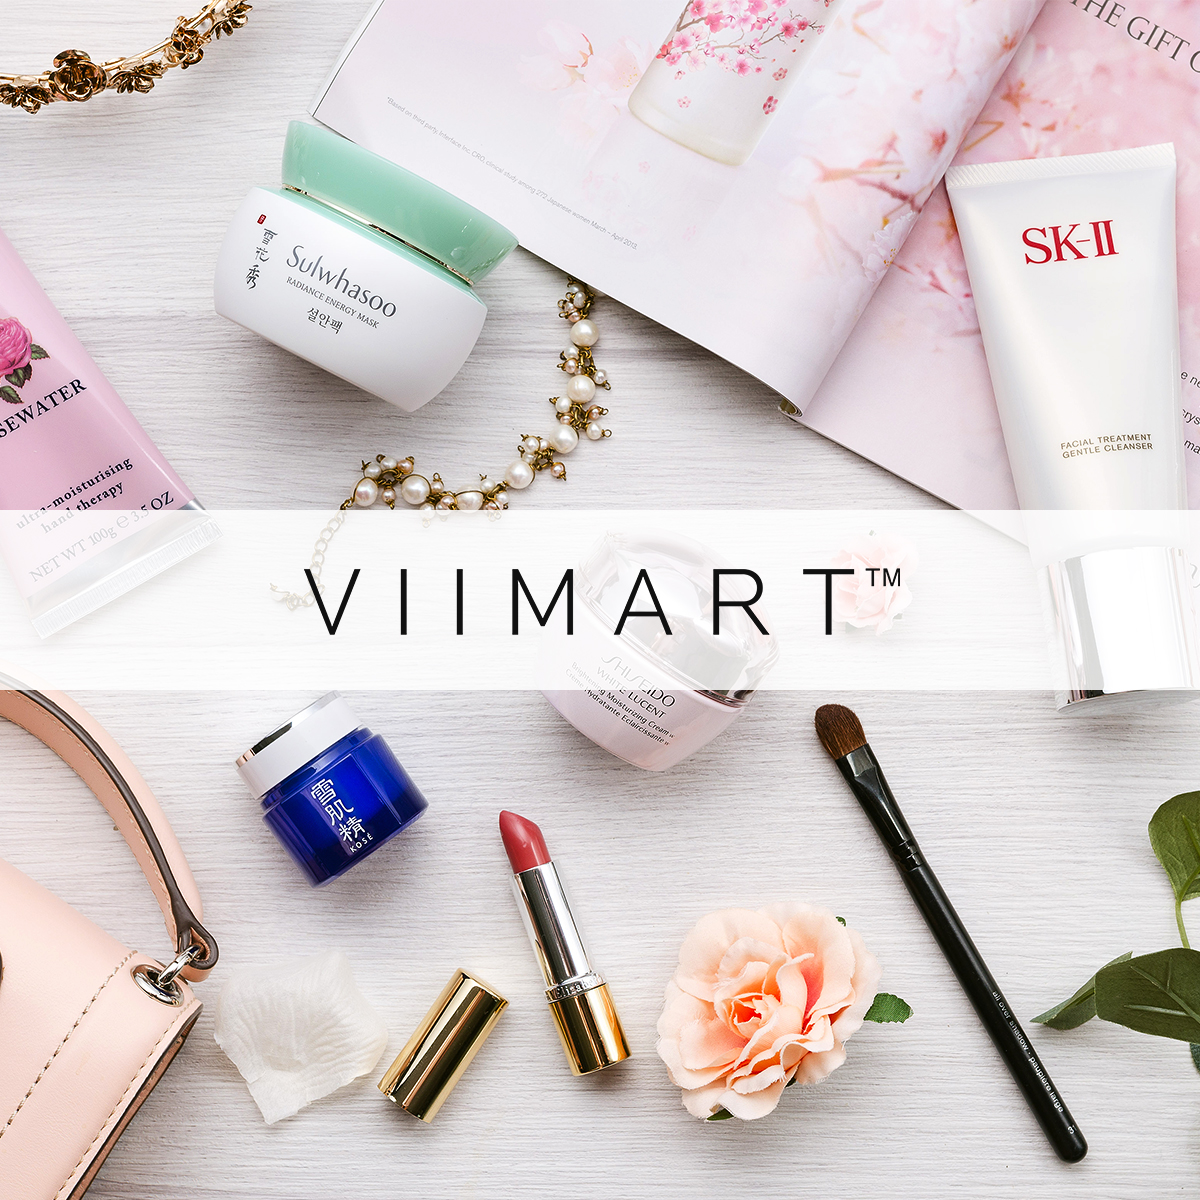 Viimart - 10% Off Products & More